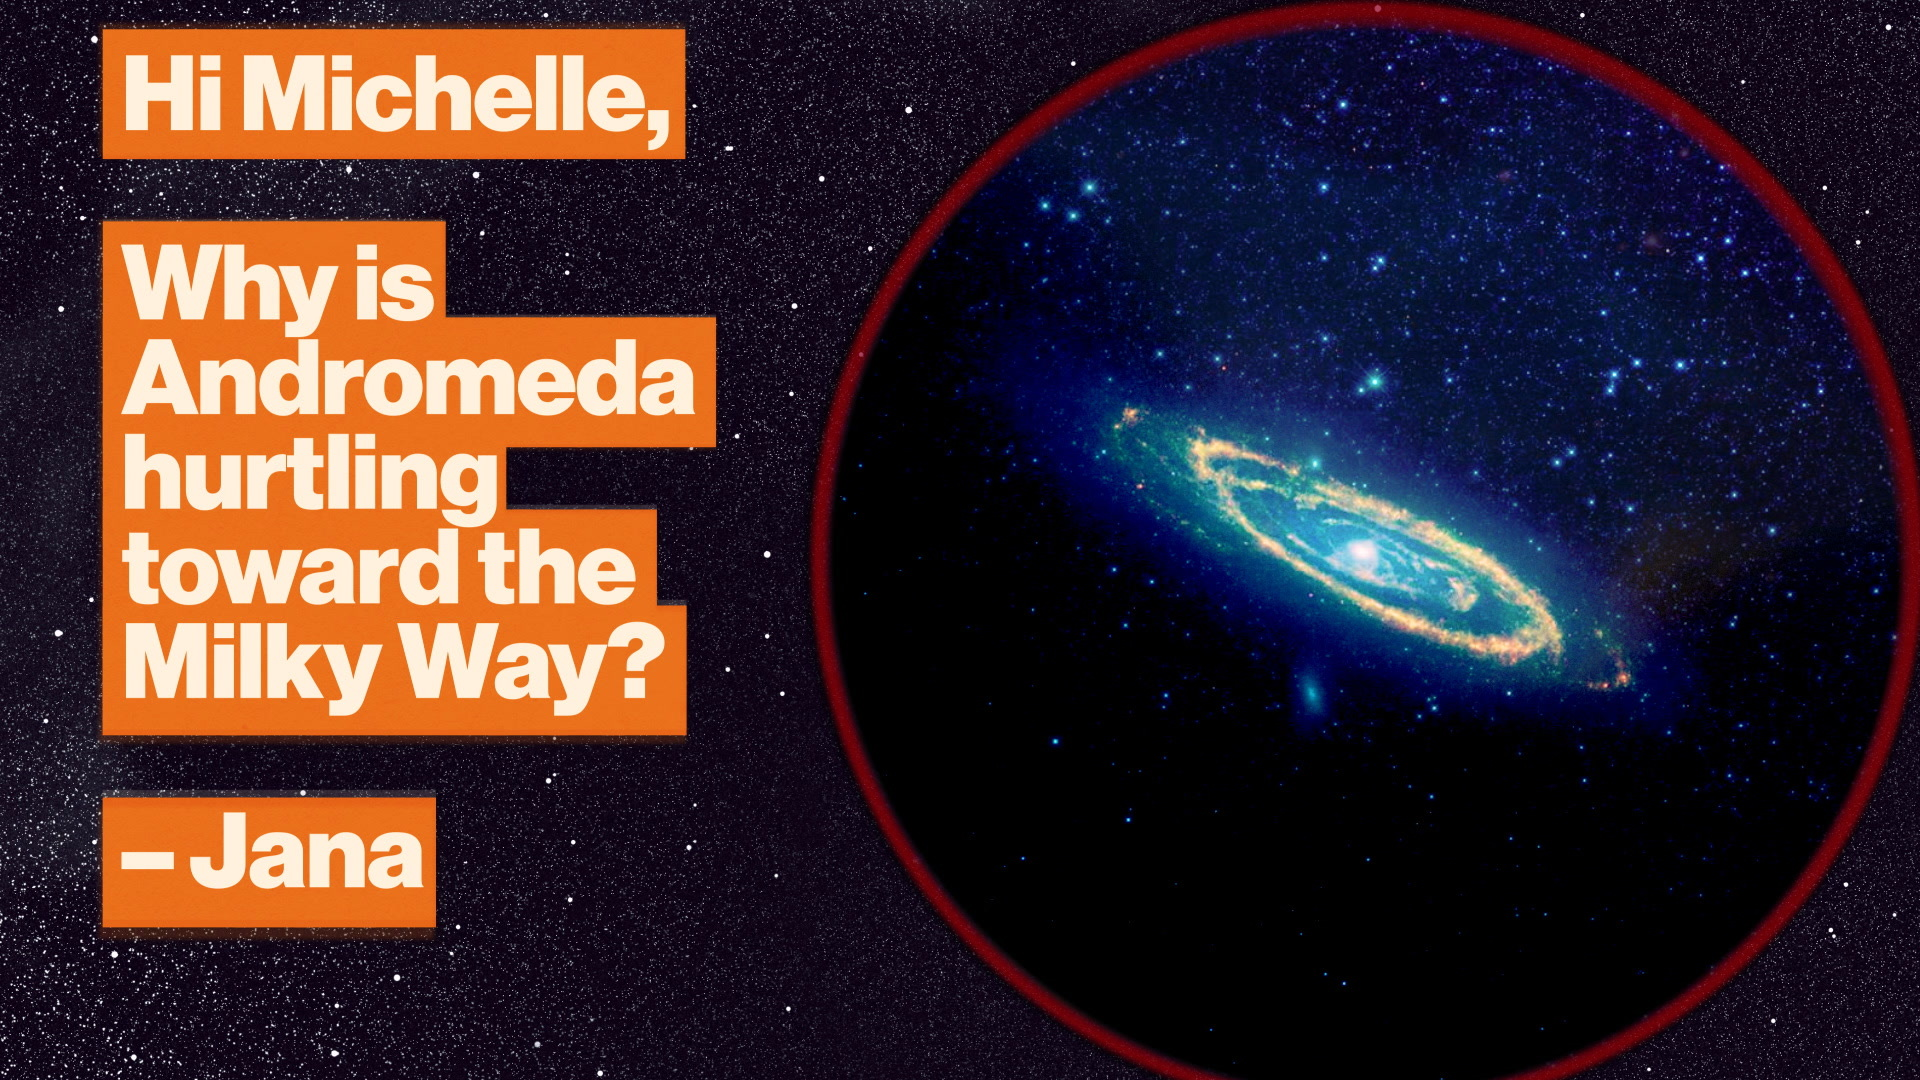 The science of expansion: Andromeda, gravity, and the 'Big Rip'